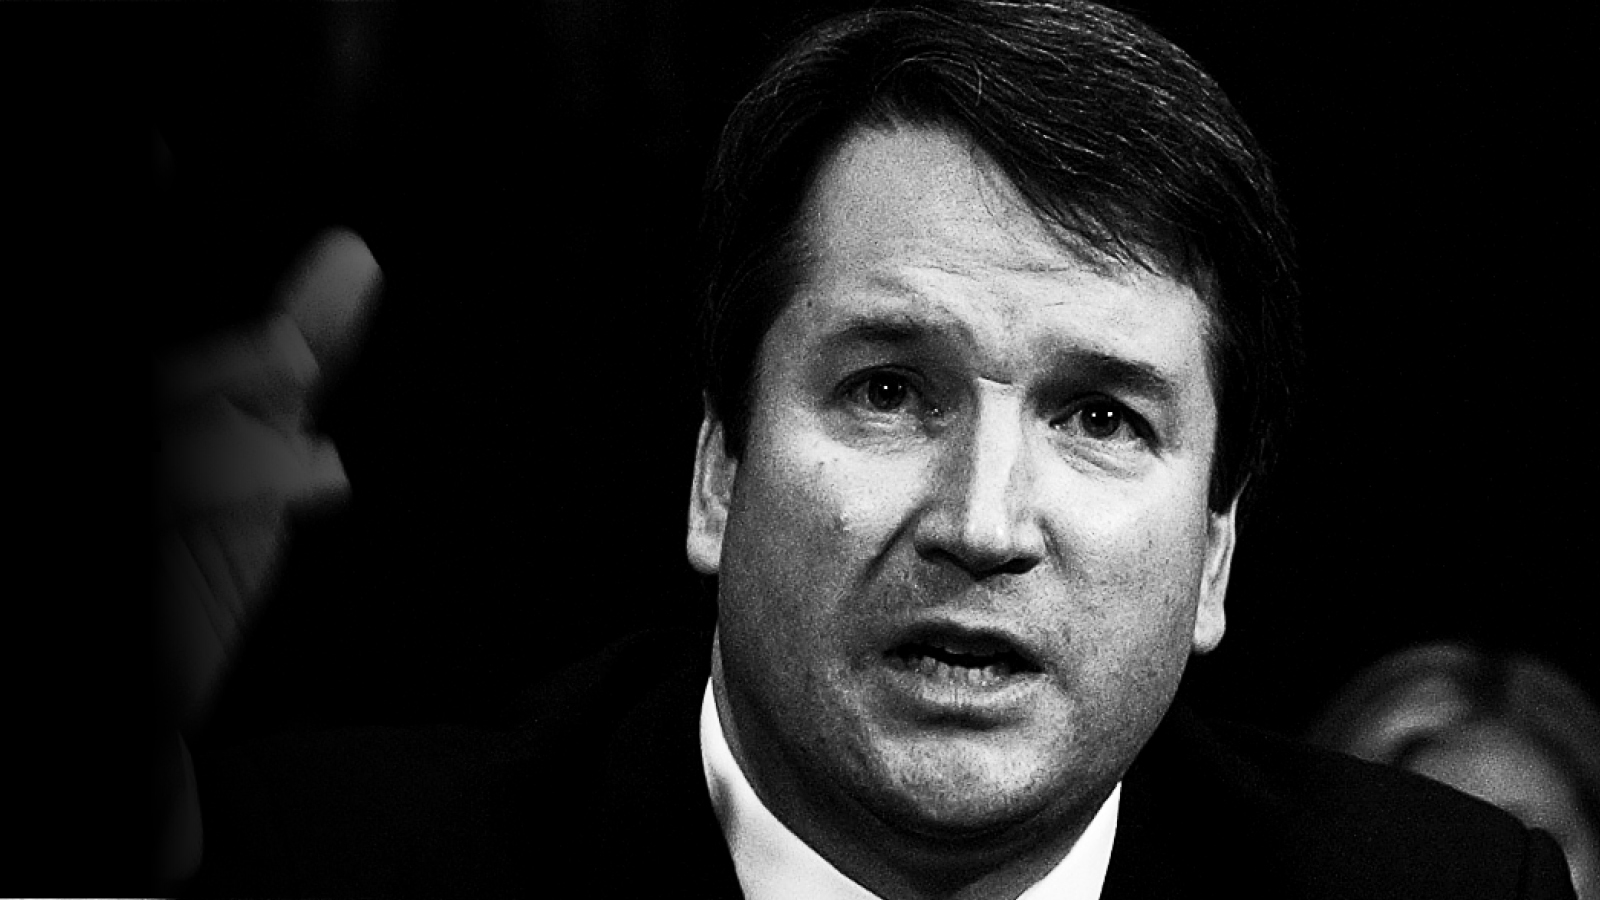 If Trump challenges the constitutional order, will Kavanaugh defend it?